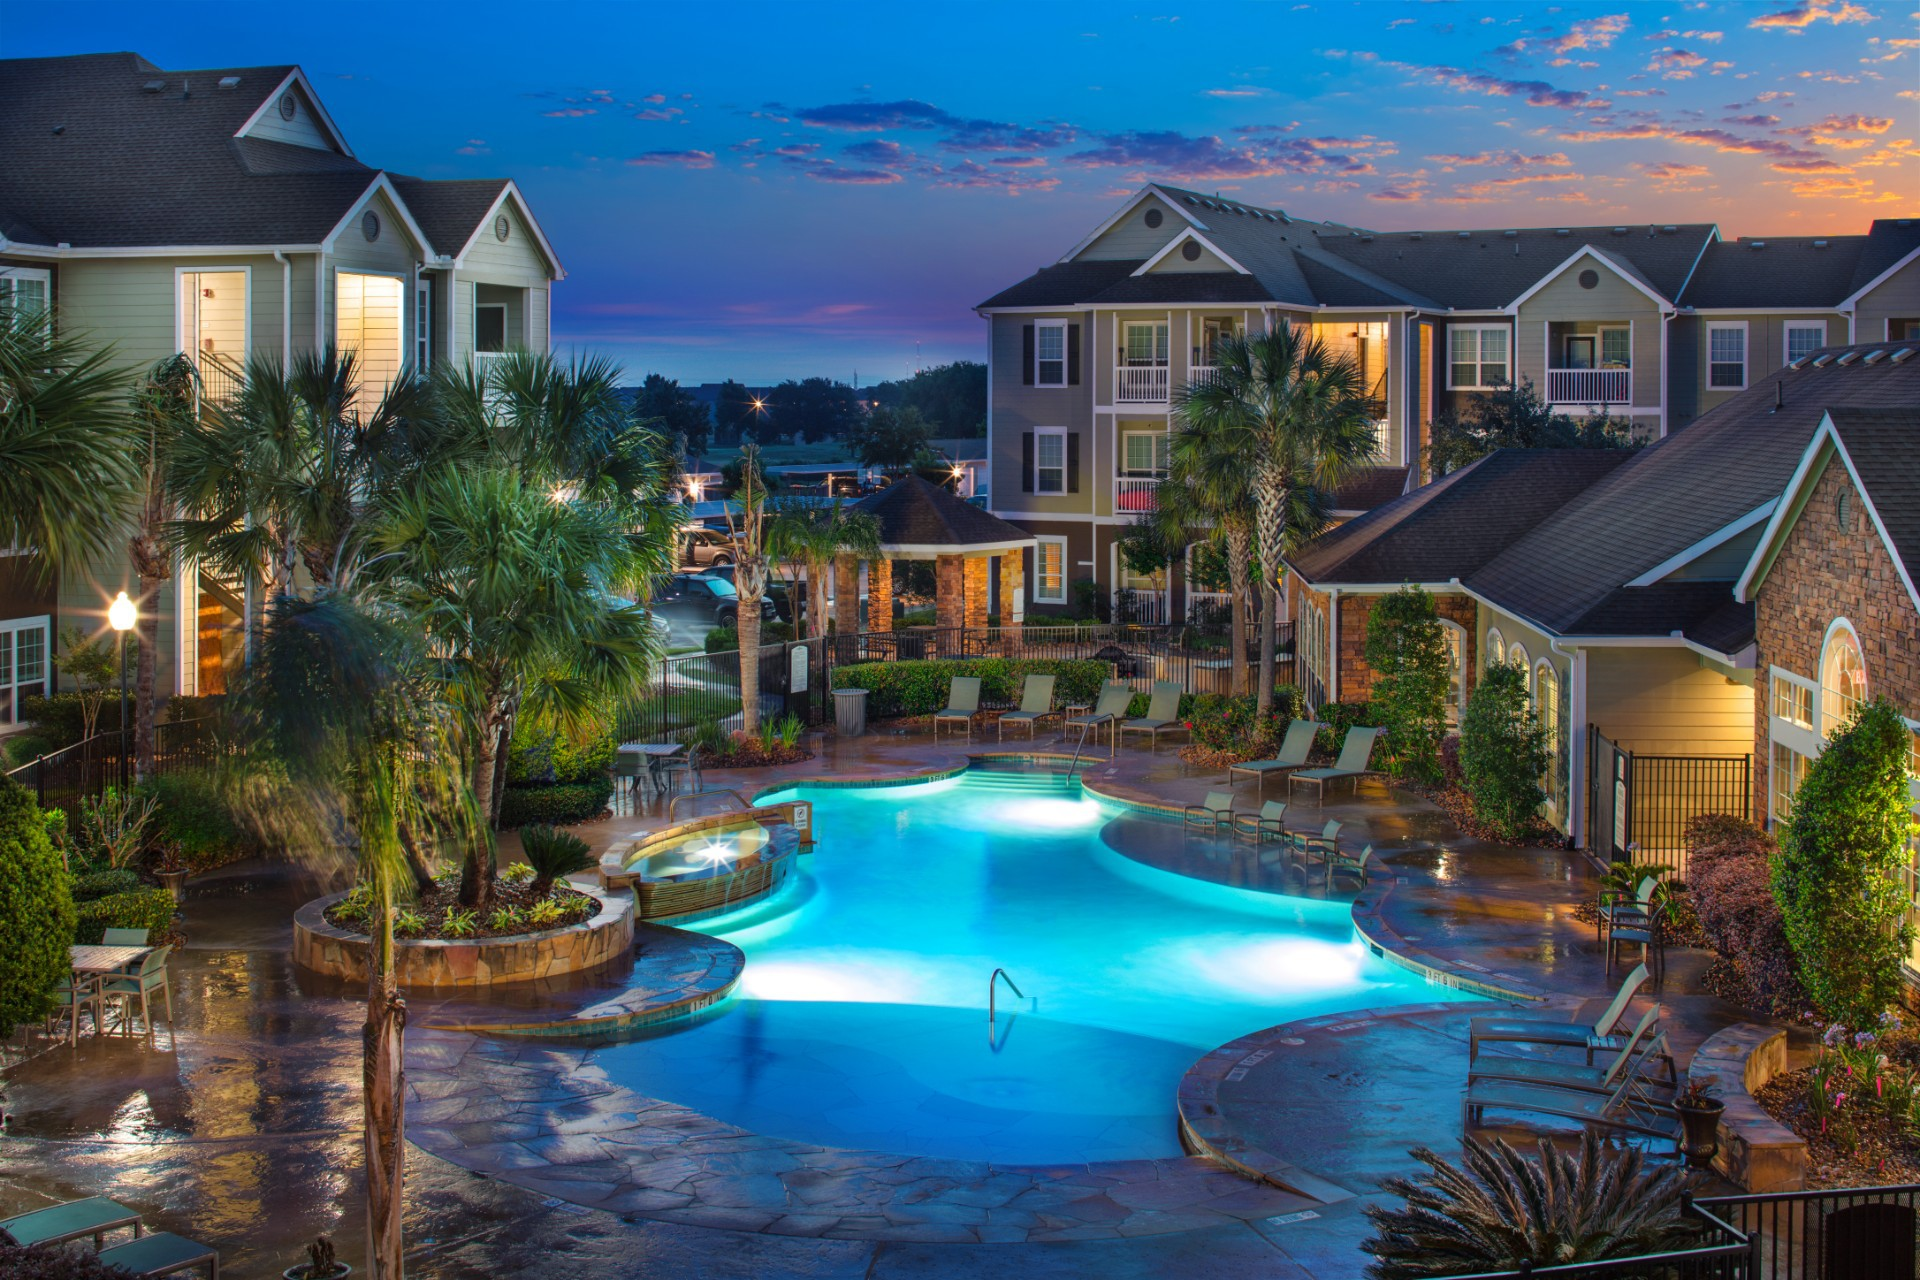 Apartments Near Academy of Hair Design-Beaumont Stone Creek for Academy of Hair Design-Beaumont Students in Beaumont, TX